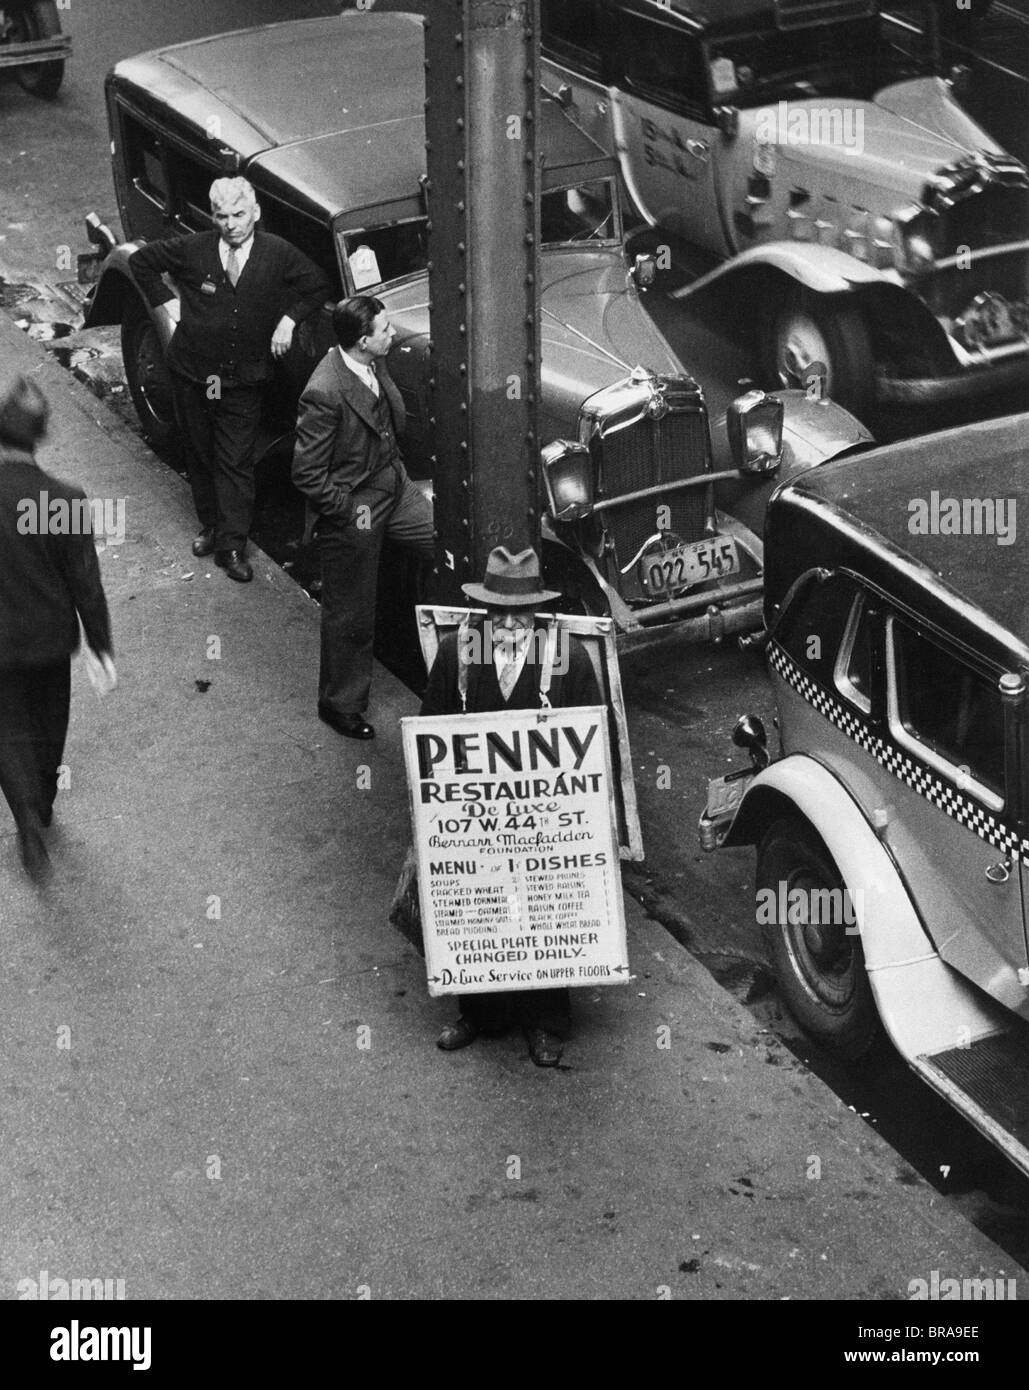 1930s NYC STREET DURING DEPRESSION WITH MAN WEARING SANDWICH BOARD ADVERTISING PENNY RESTAURANT - Stock Image